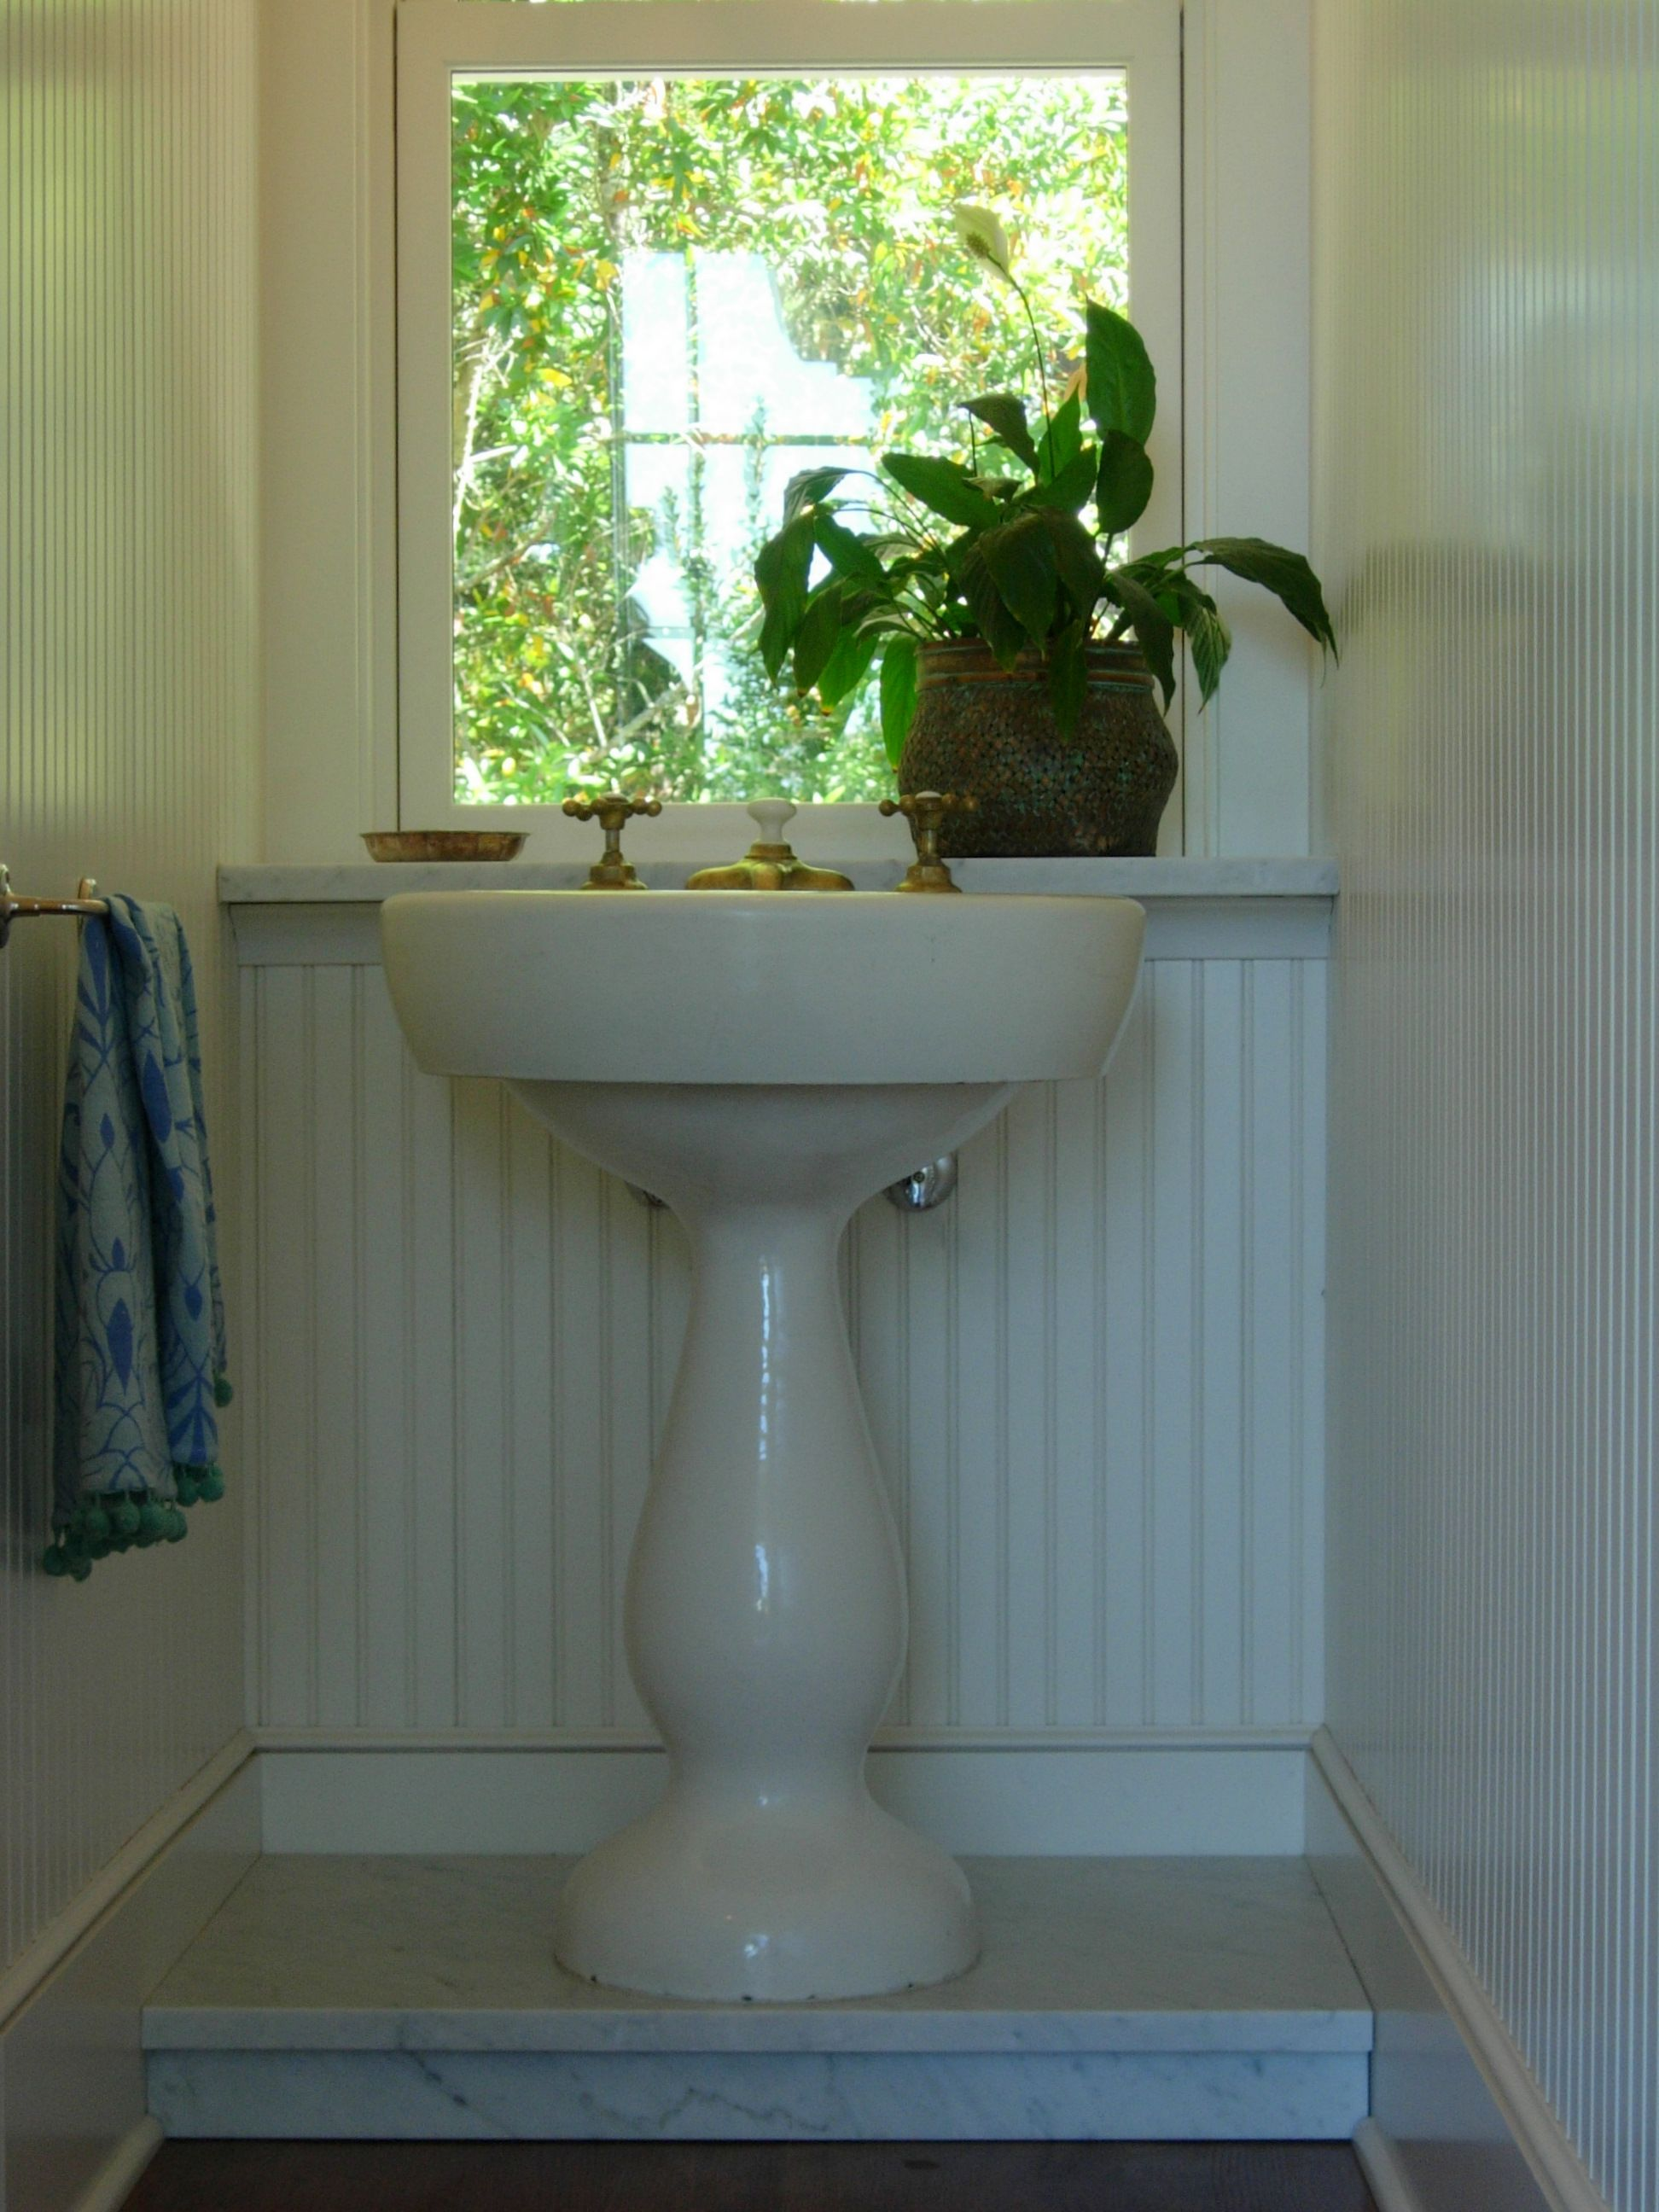 Elevate Your Antique Pedestal Sink By Building A Platform. Bring It Up To  The Height That Feels Right.